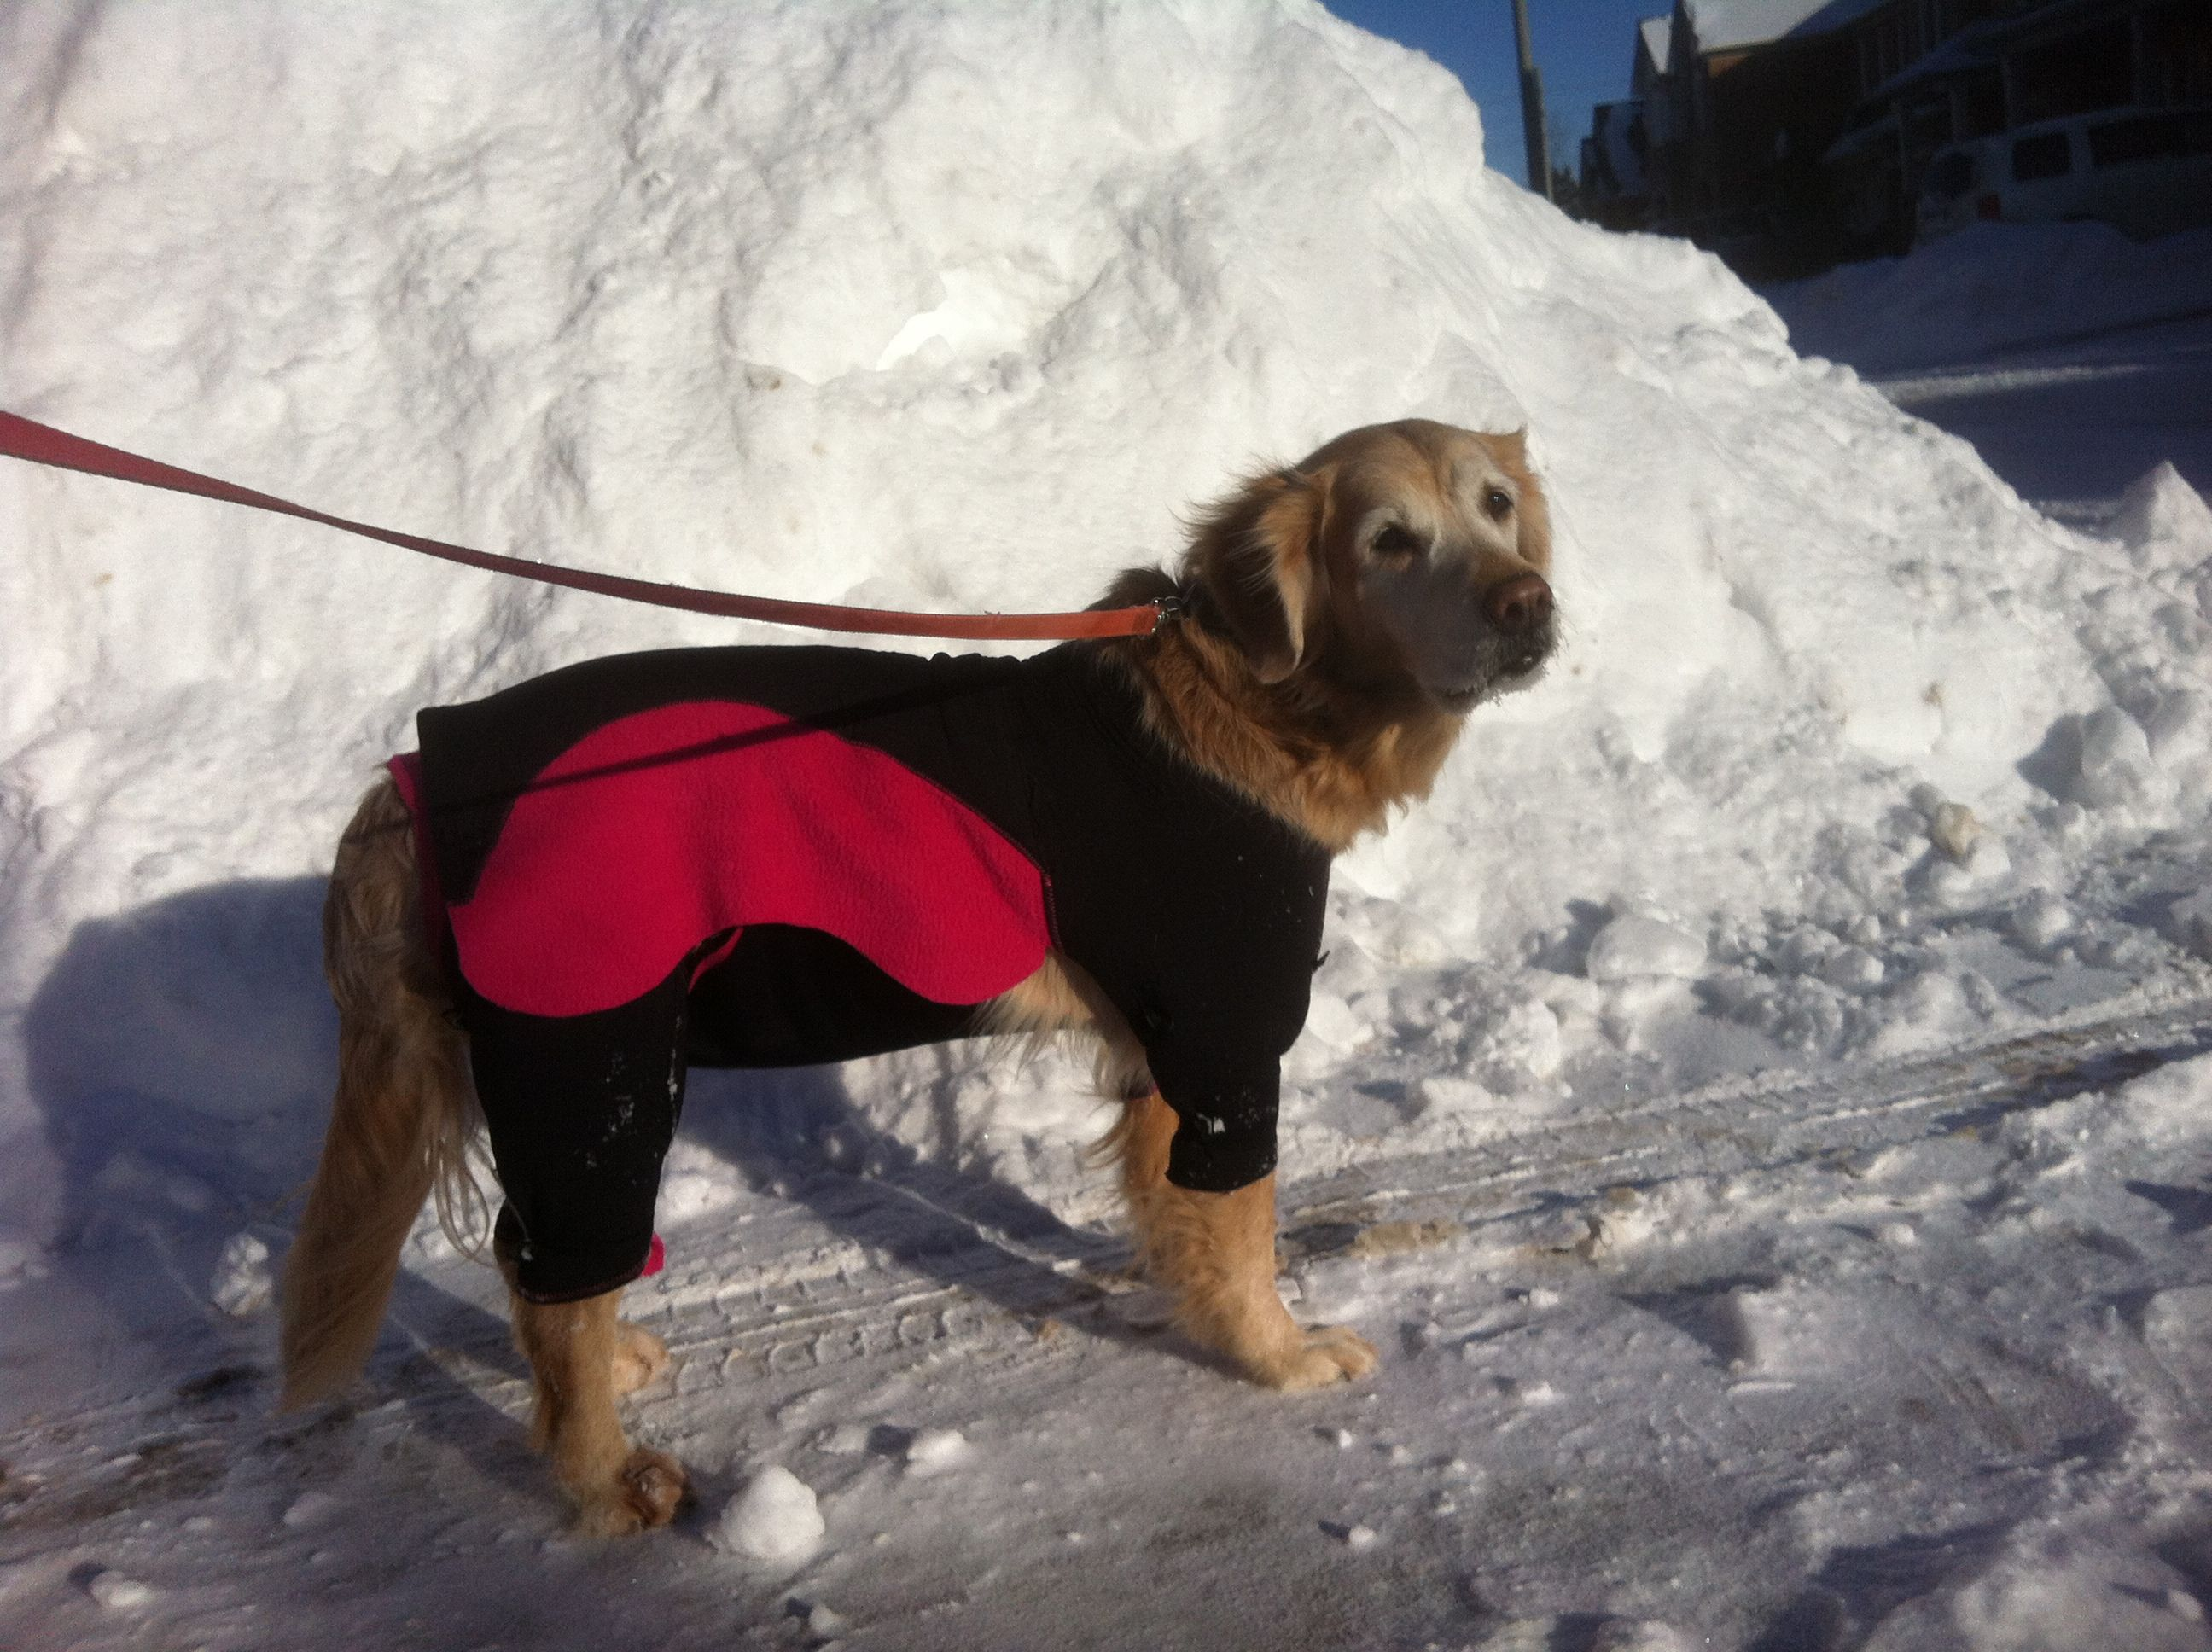 Got to love winter in Ontario! Snows the whole night long... and then - afternoon gorgeous sunshine!         www.practicaldog.ca